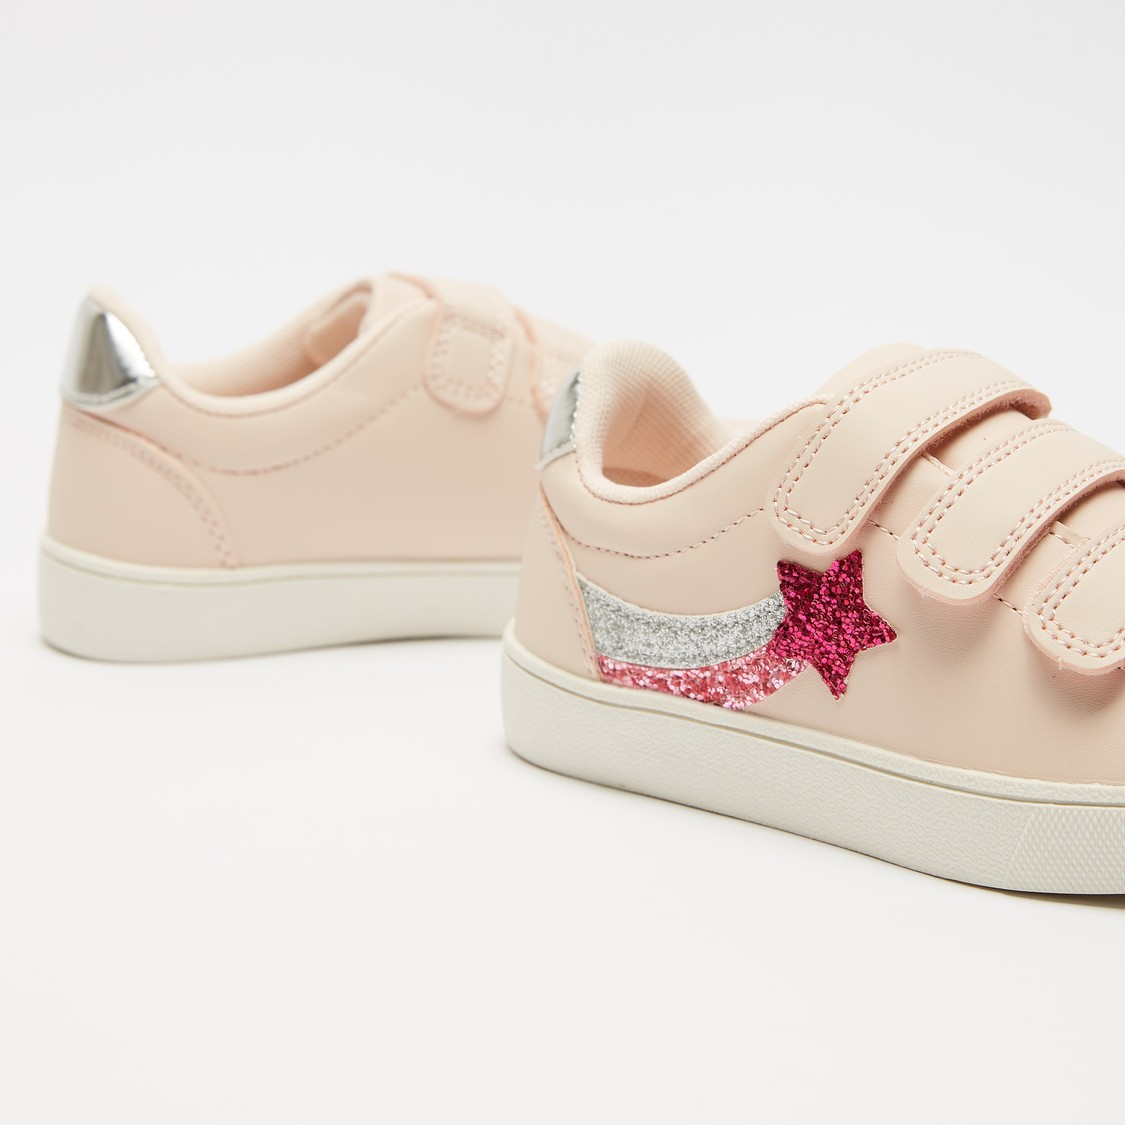 Applique Detail Shoes with Hook and Loop Closure